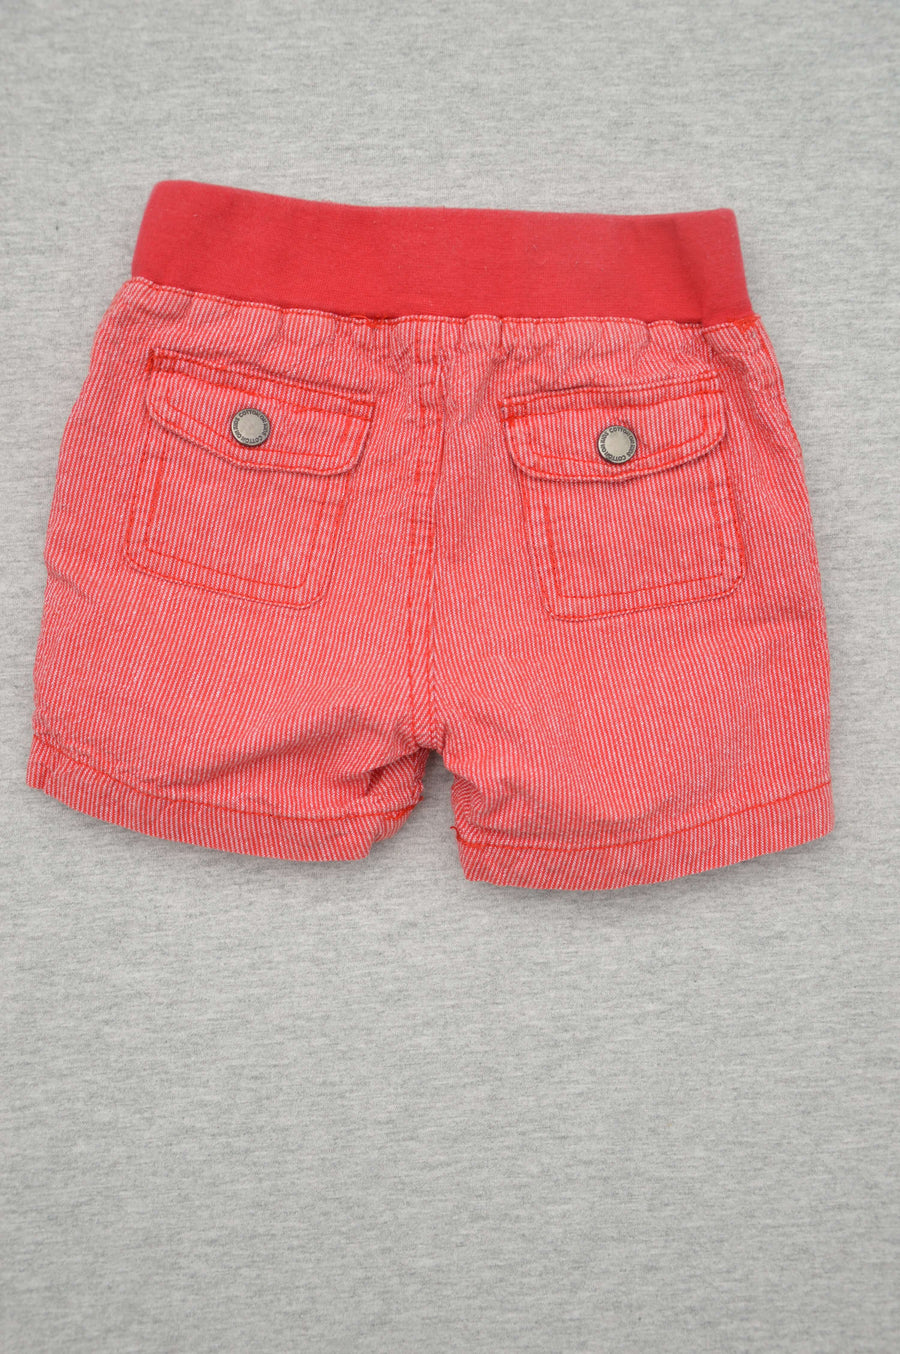 Cotton On red striped seersucker shorts, size 3-6m